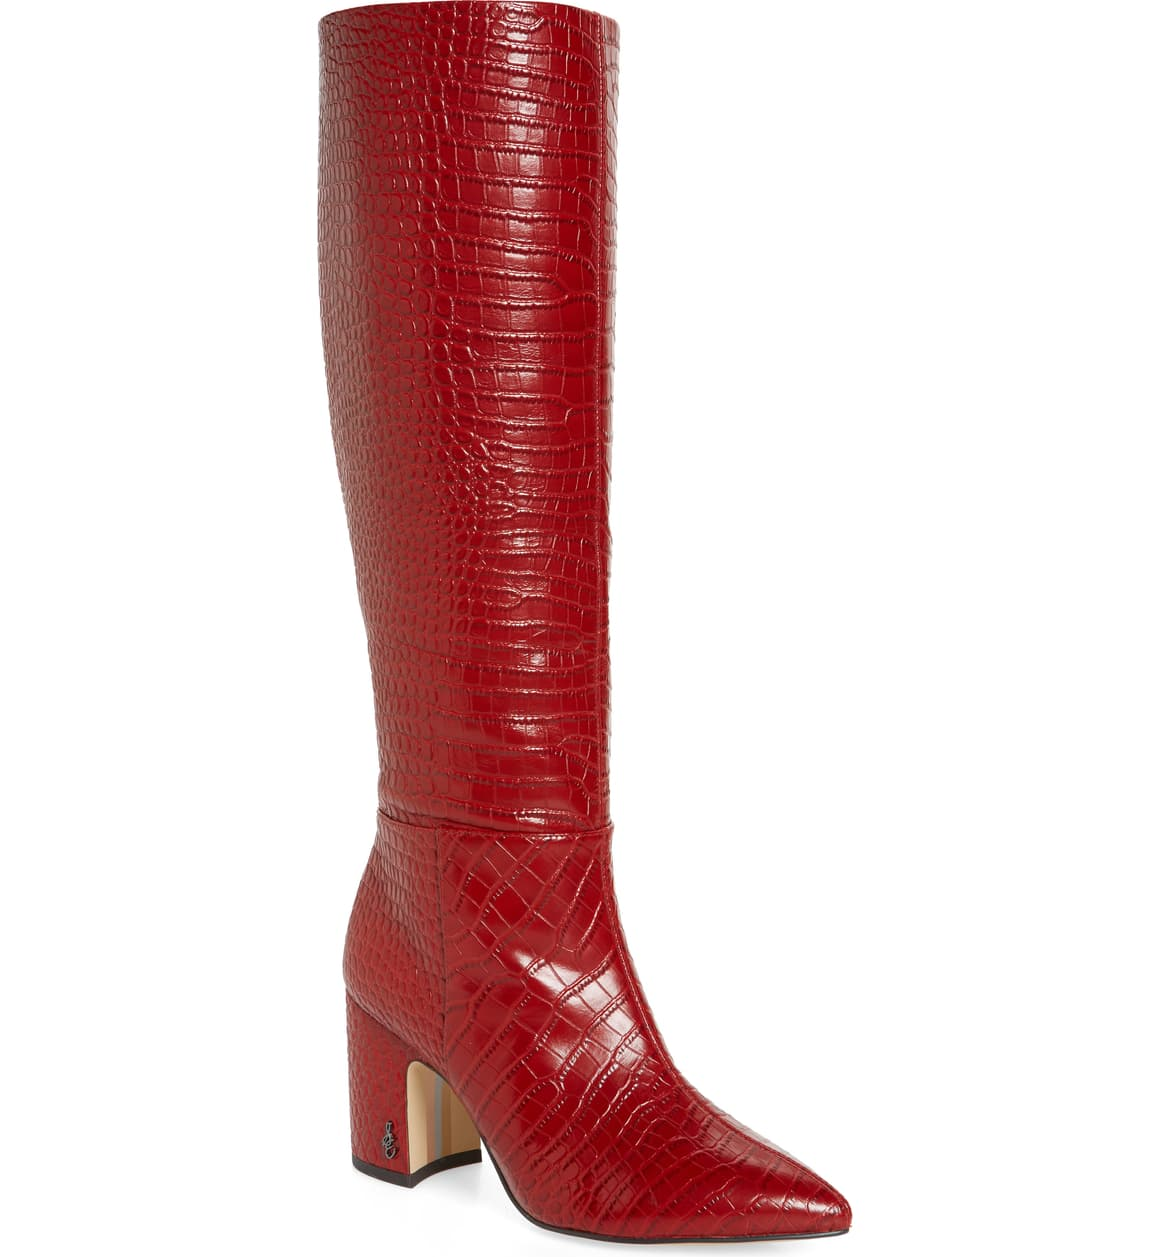 Nordstrom summer sale sam edelman red knee high leather boots